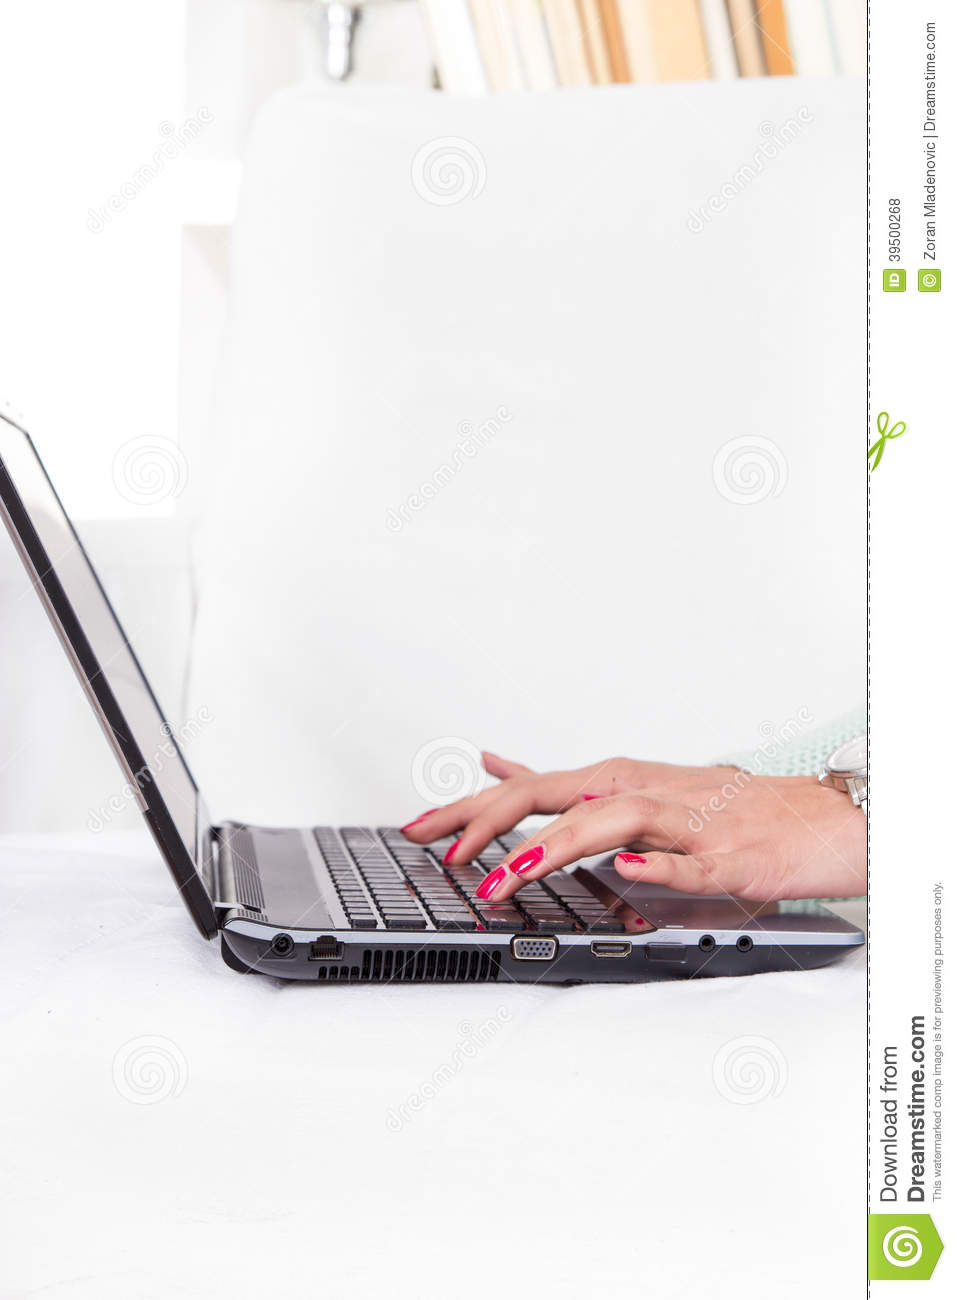 Female hands typing on laptop keyboard with red manicure